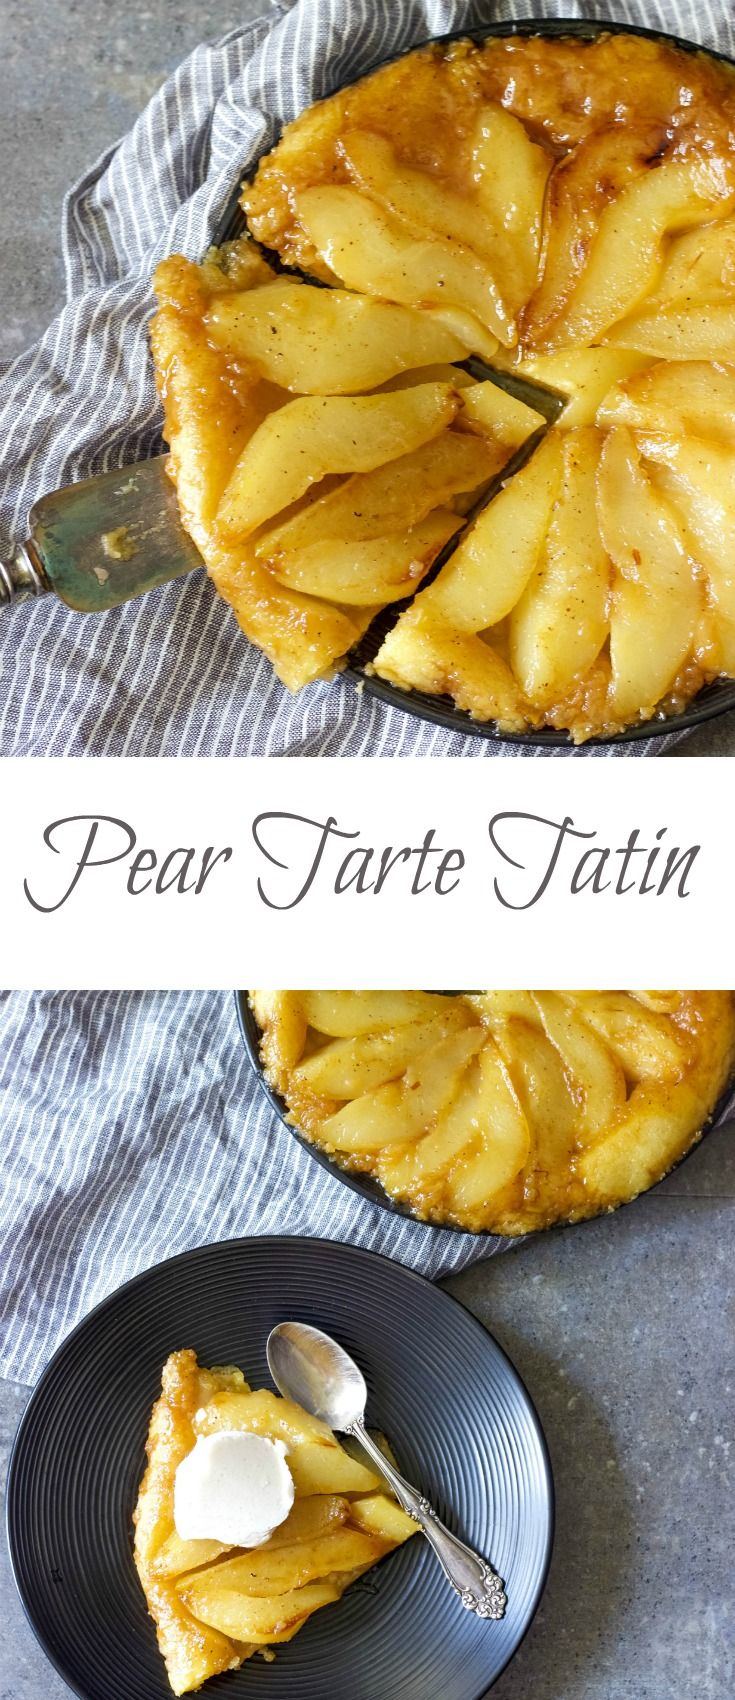 Do you want a bite of something scrumptious? Try this easy French dessert. Pear Tarte Tatin is easy to prepare, flavorful and crowd-pleasing dessert.